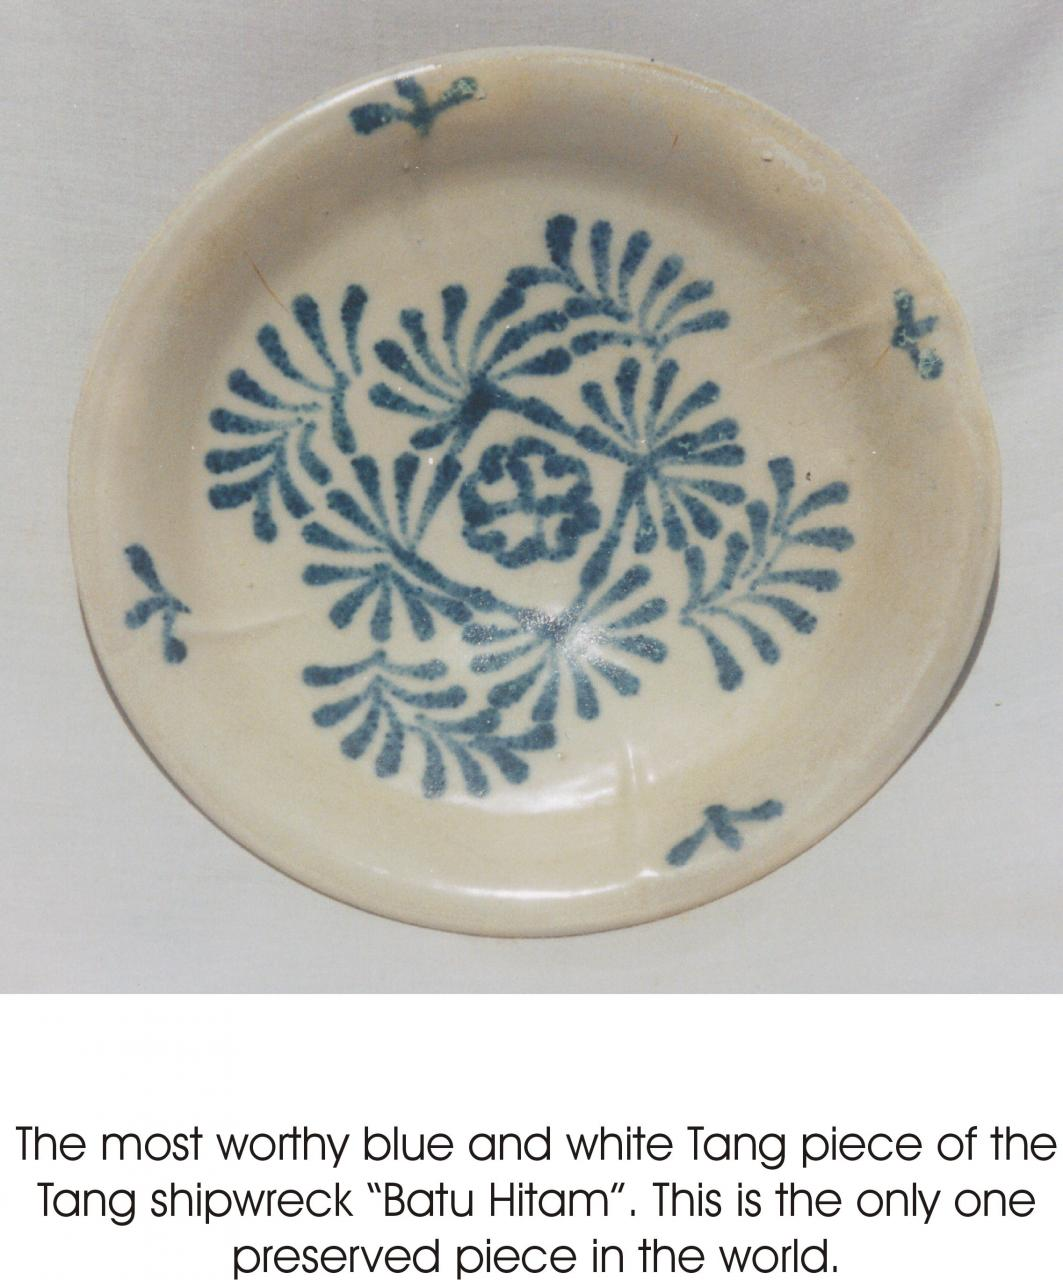 The earliest Blue and White porcelain